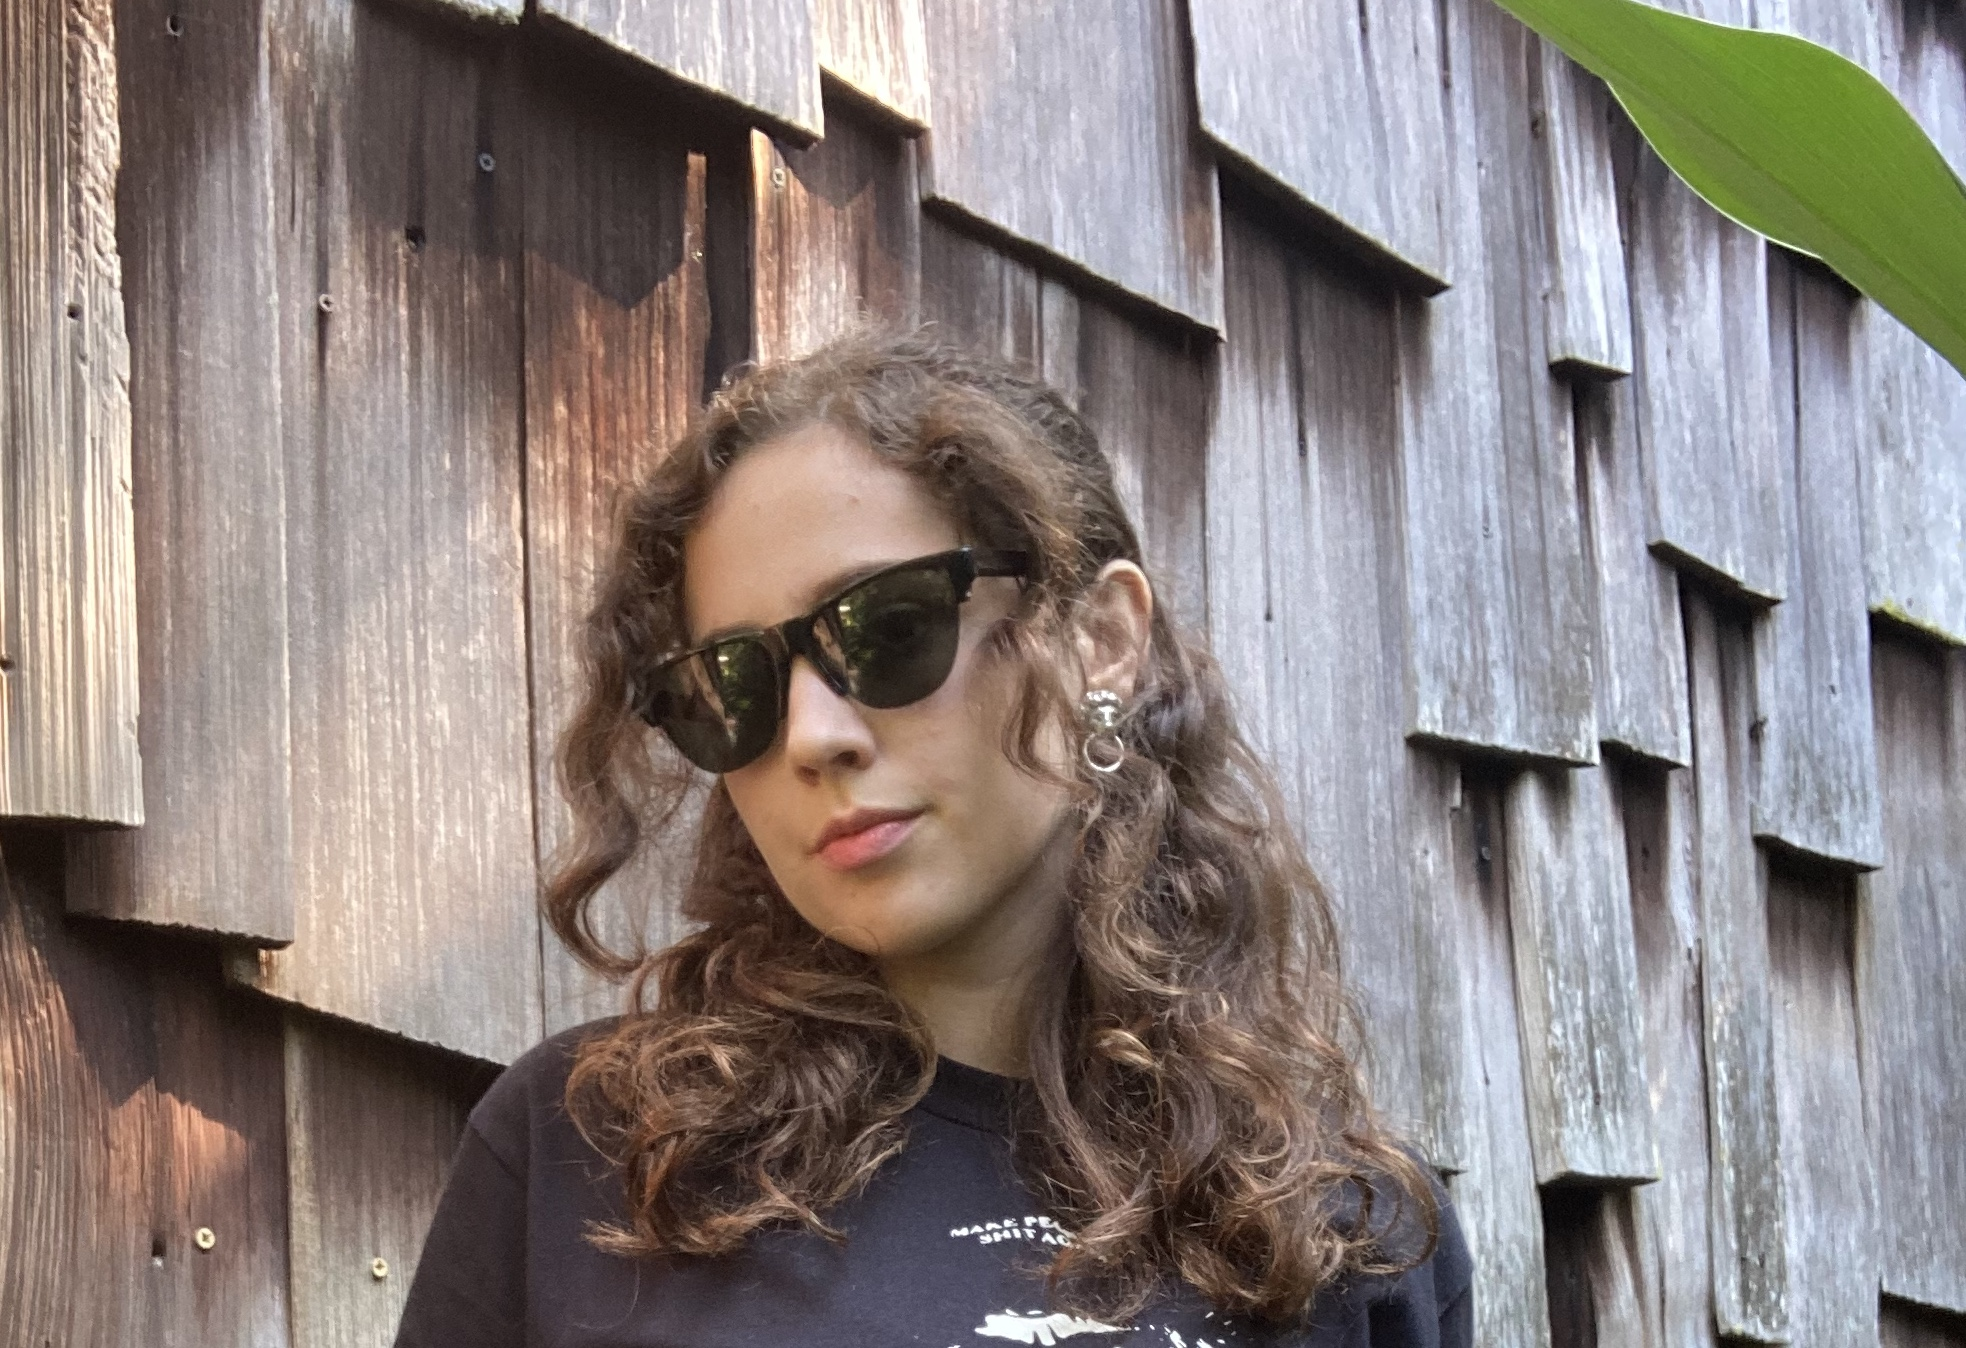 A photo of Ingrid Jensen wearing sunglasses, a black t shirt and a pair of denim jeans